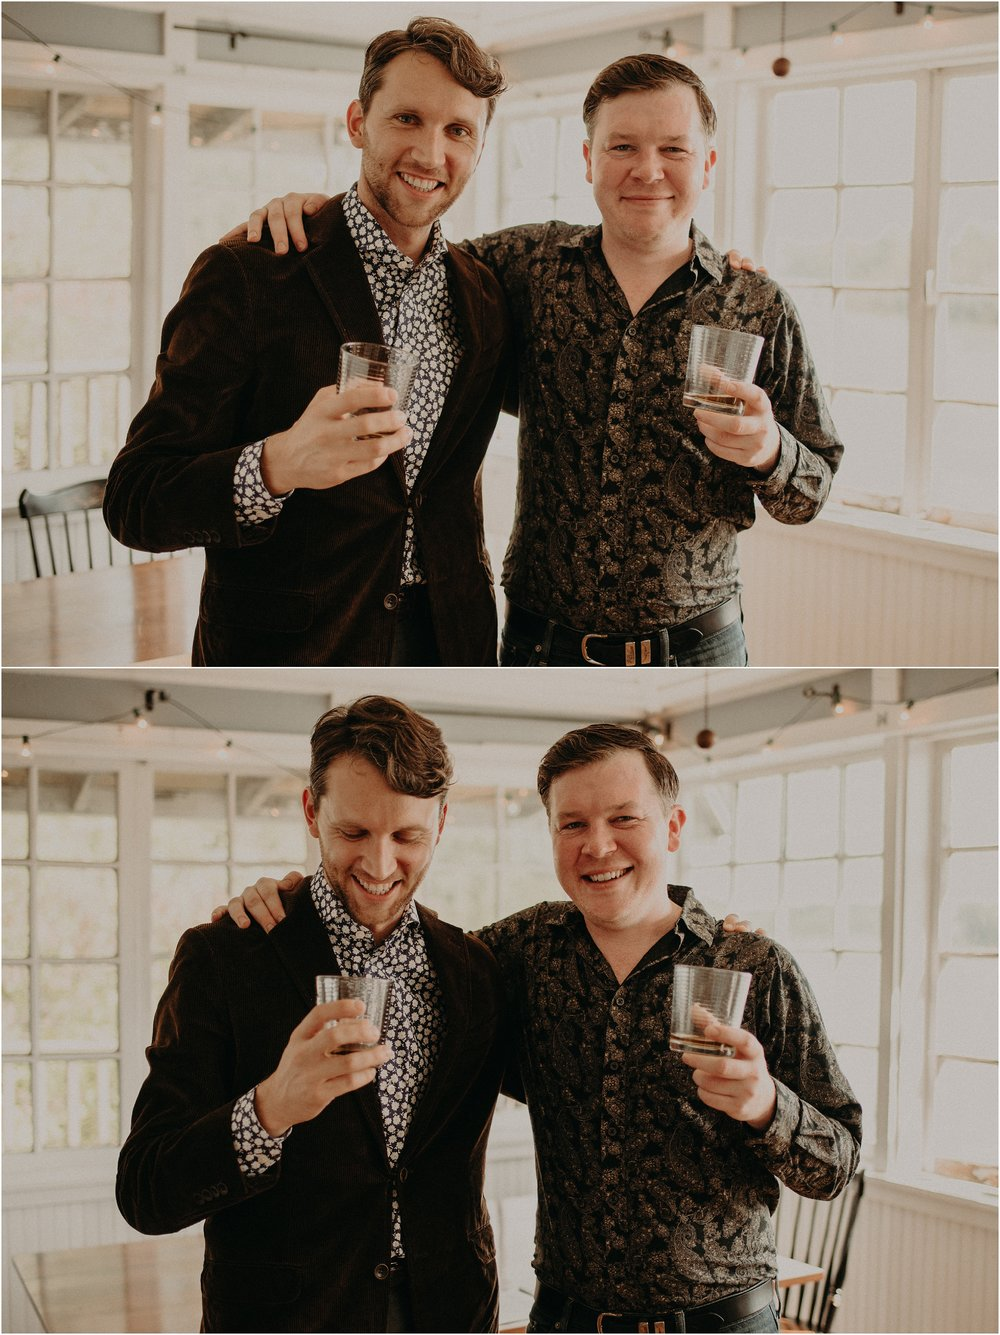 The groom and his best man share a glass of scotch together